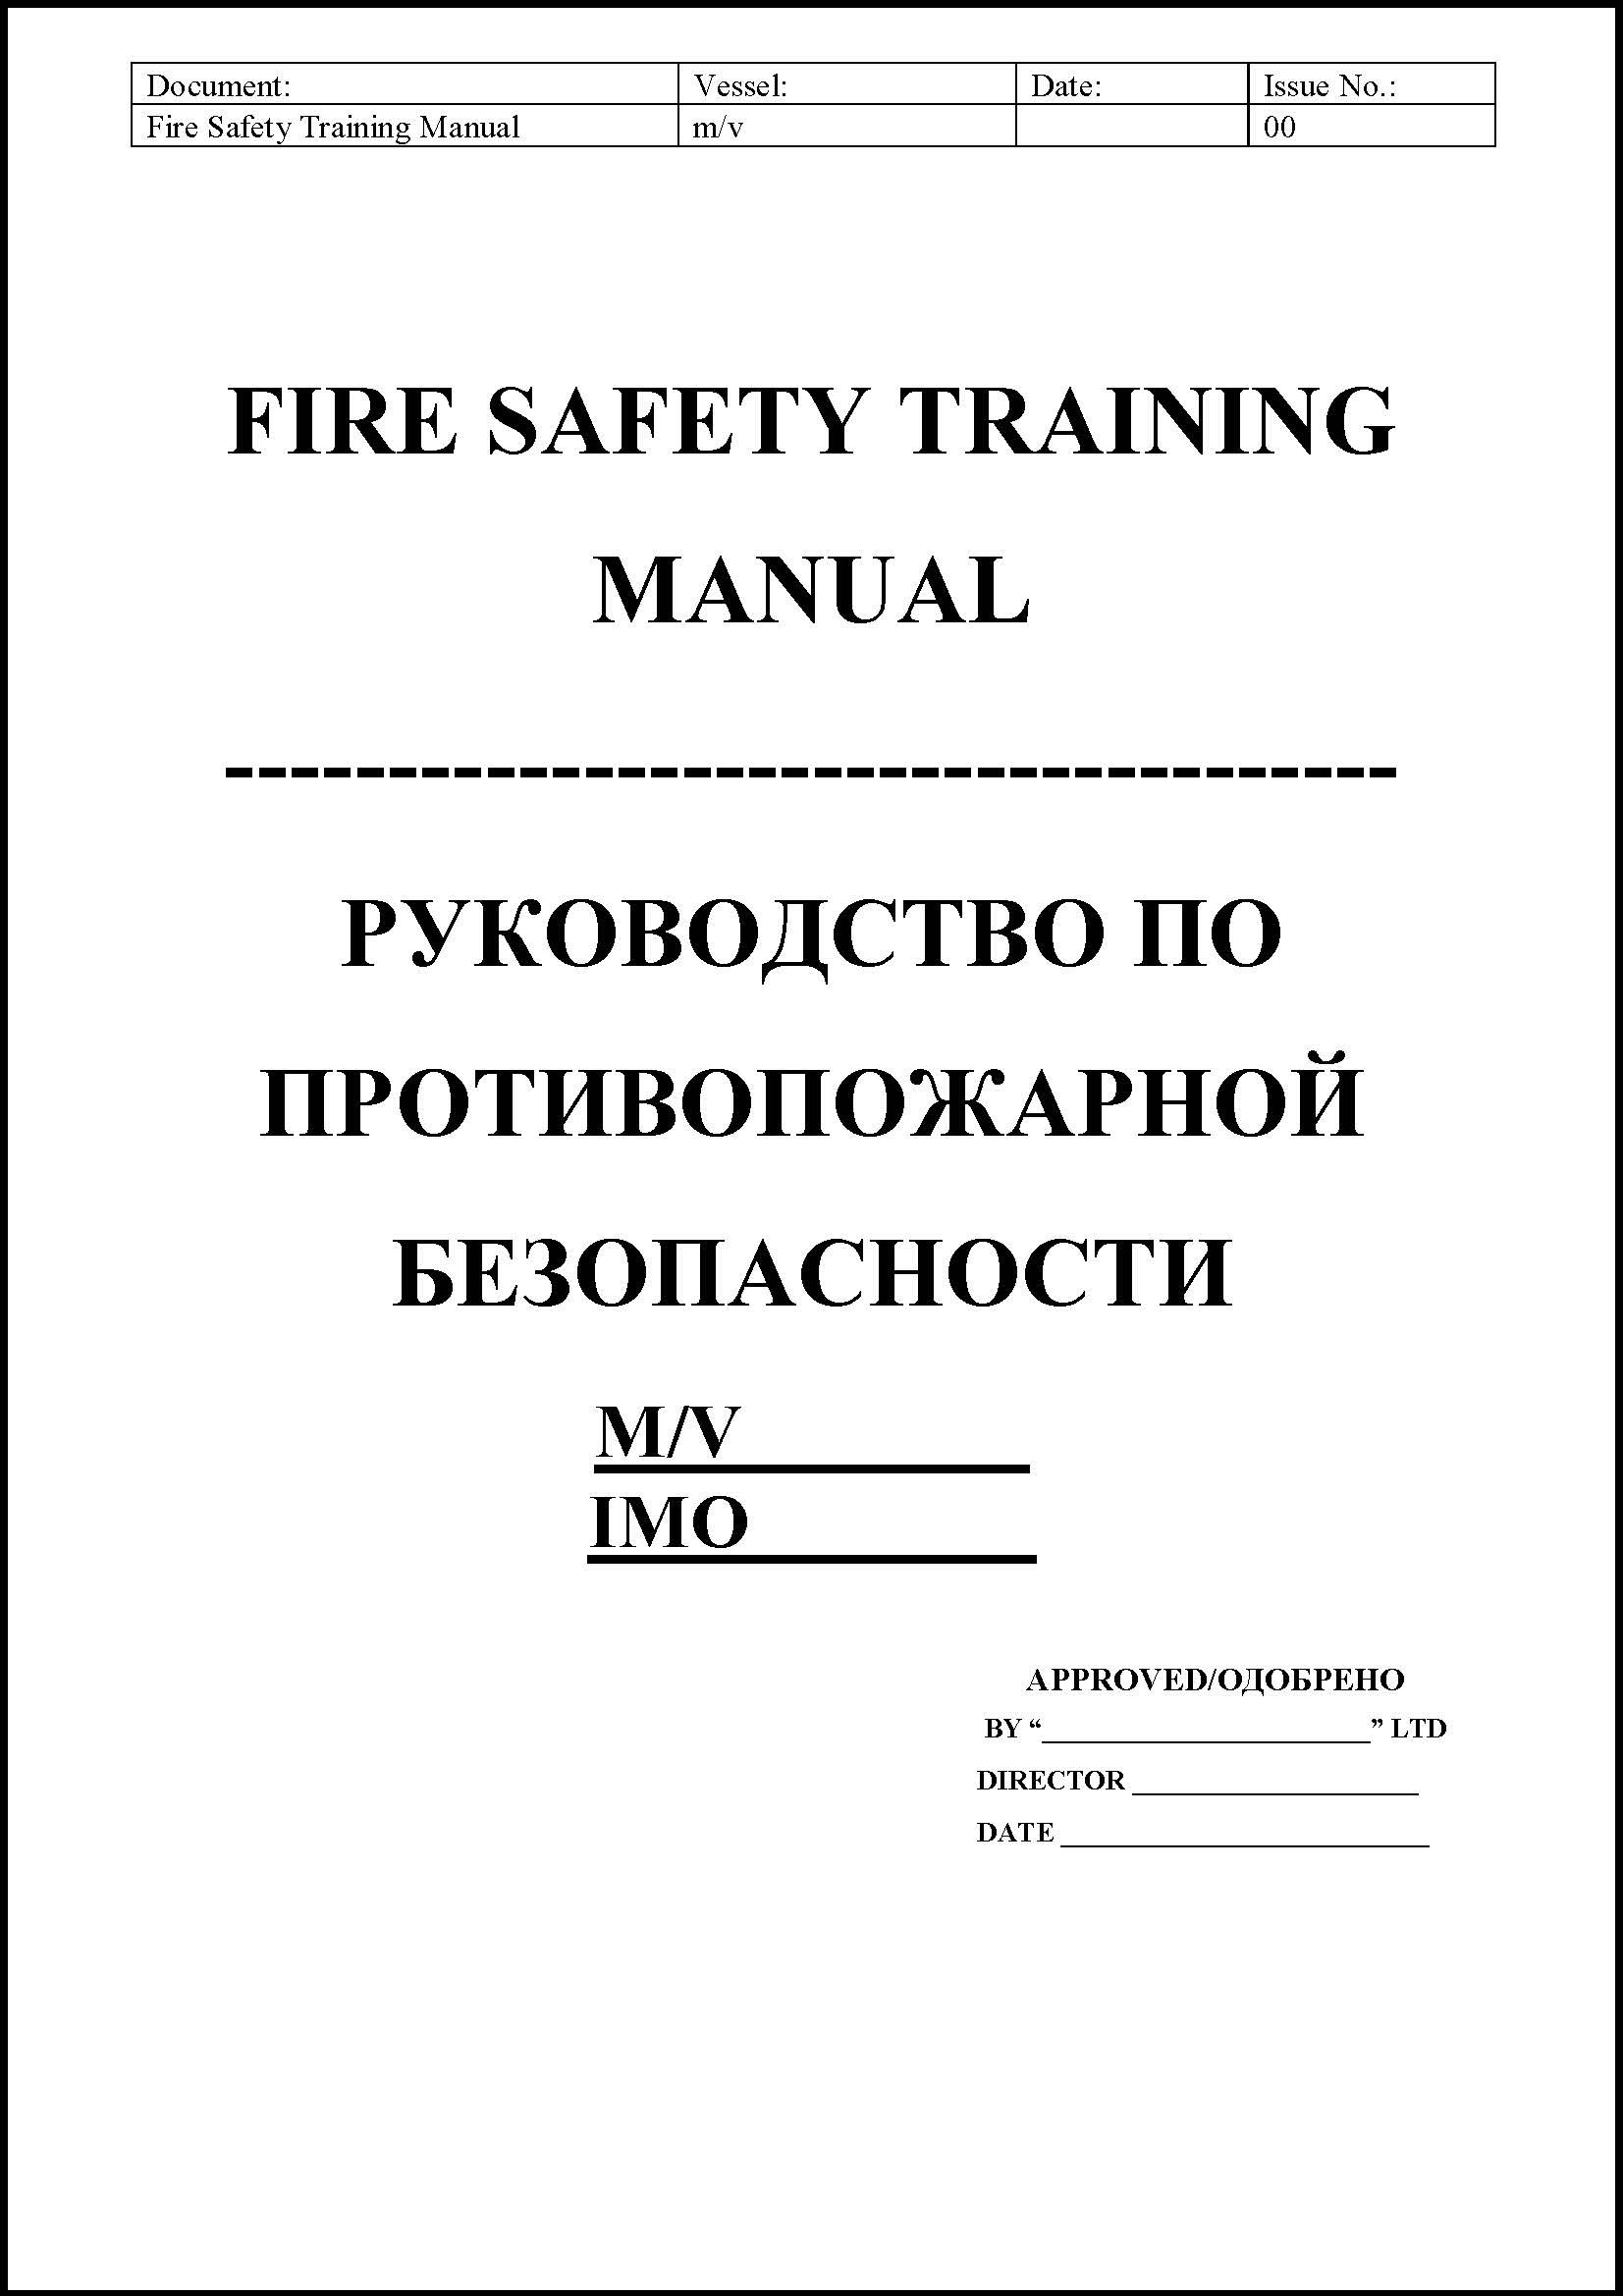 FIRE SAFETY TRAINING MANUAL — MSM